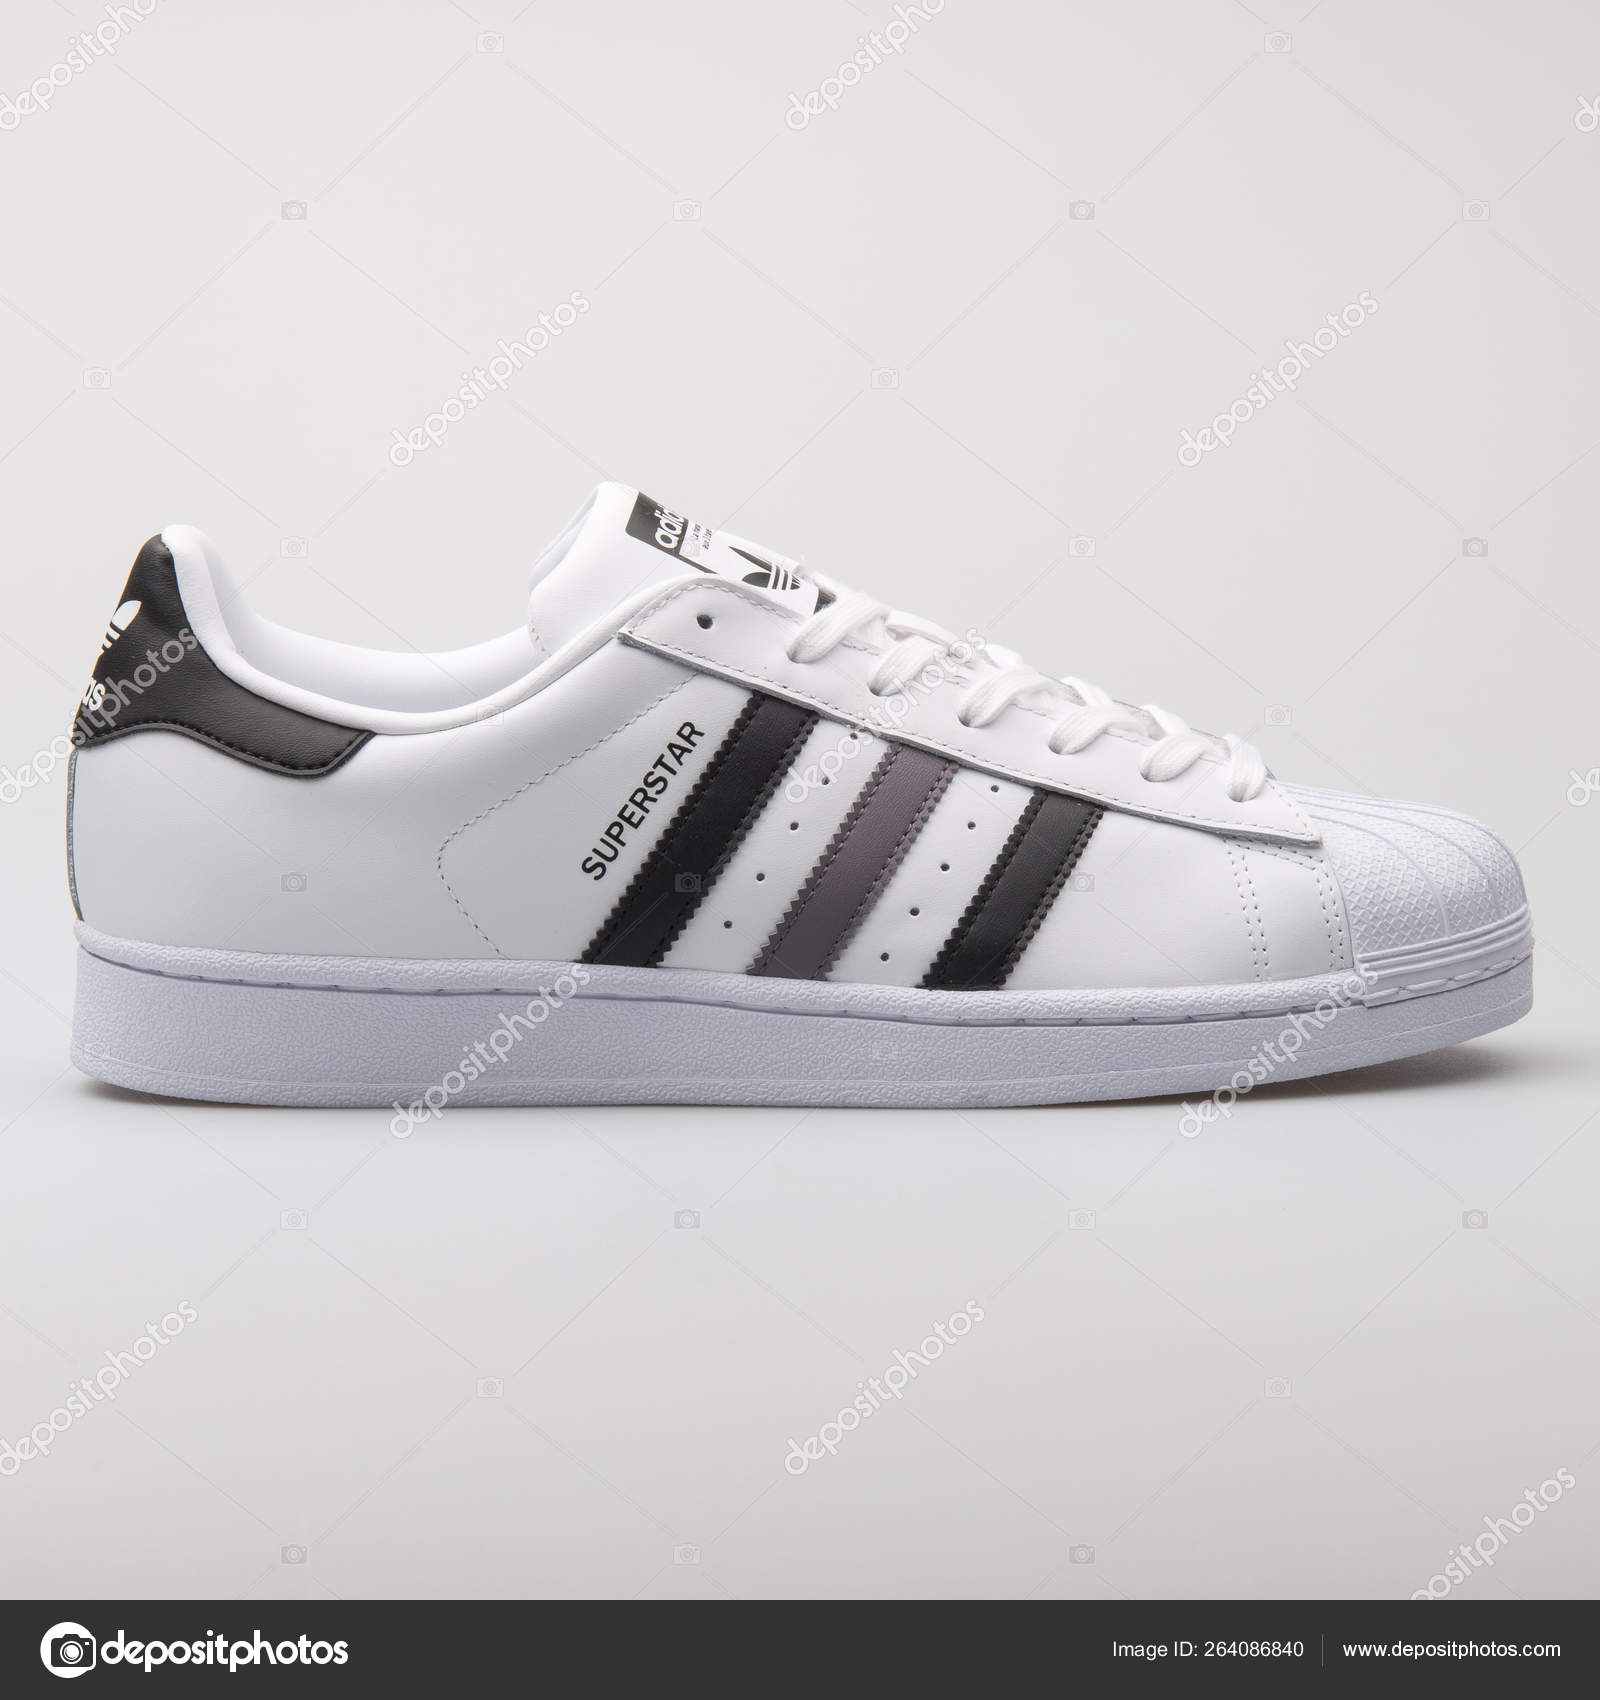 adidas superstar id